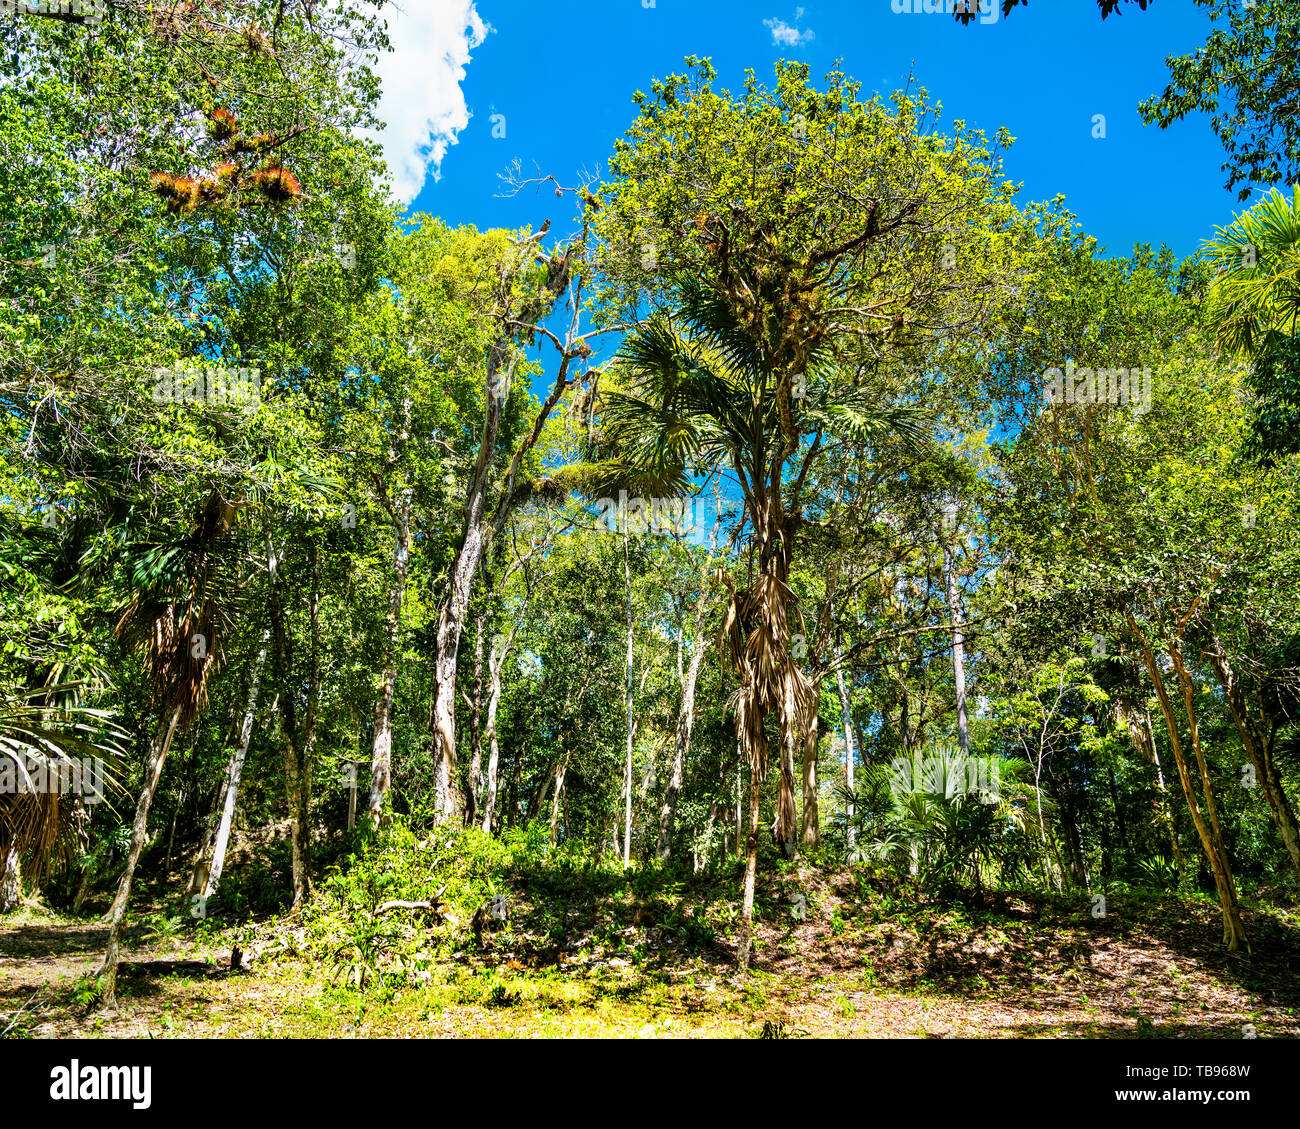 Rainforest at Tikal National Park in Guatemala - Stock Image